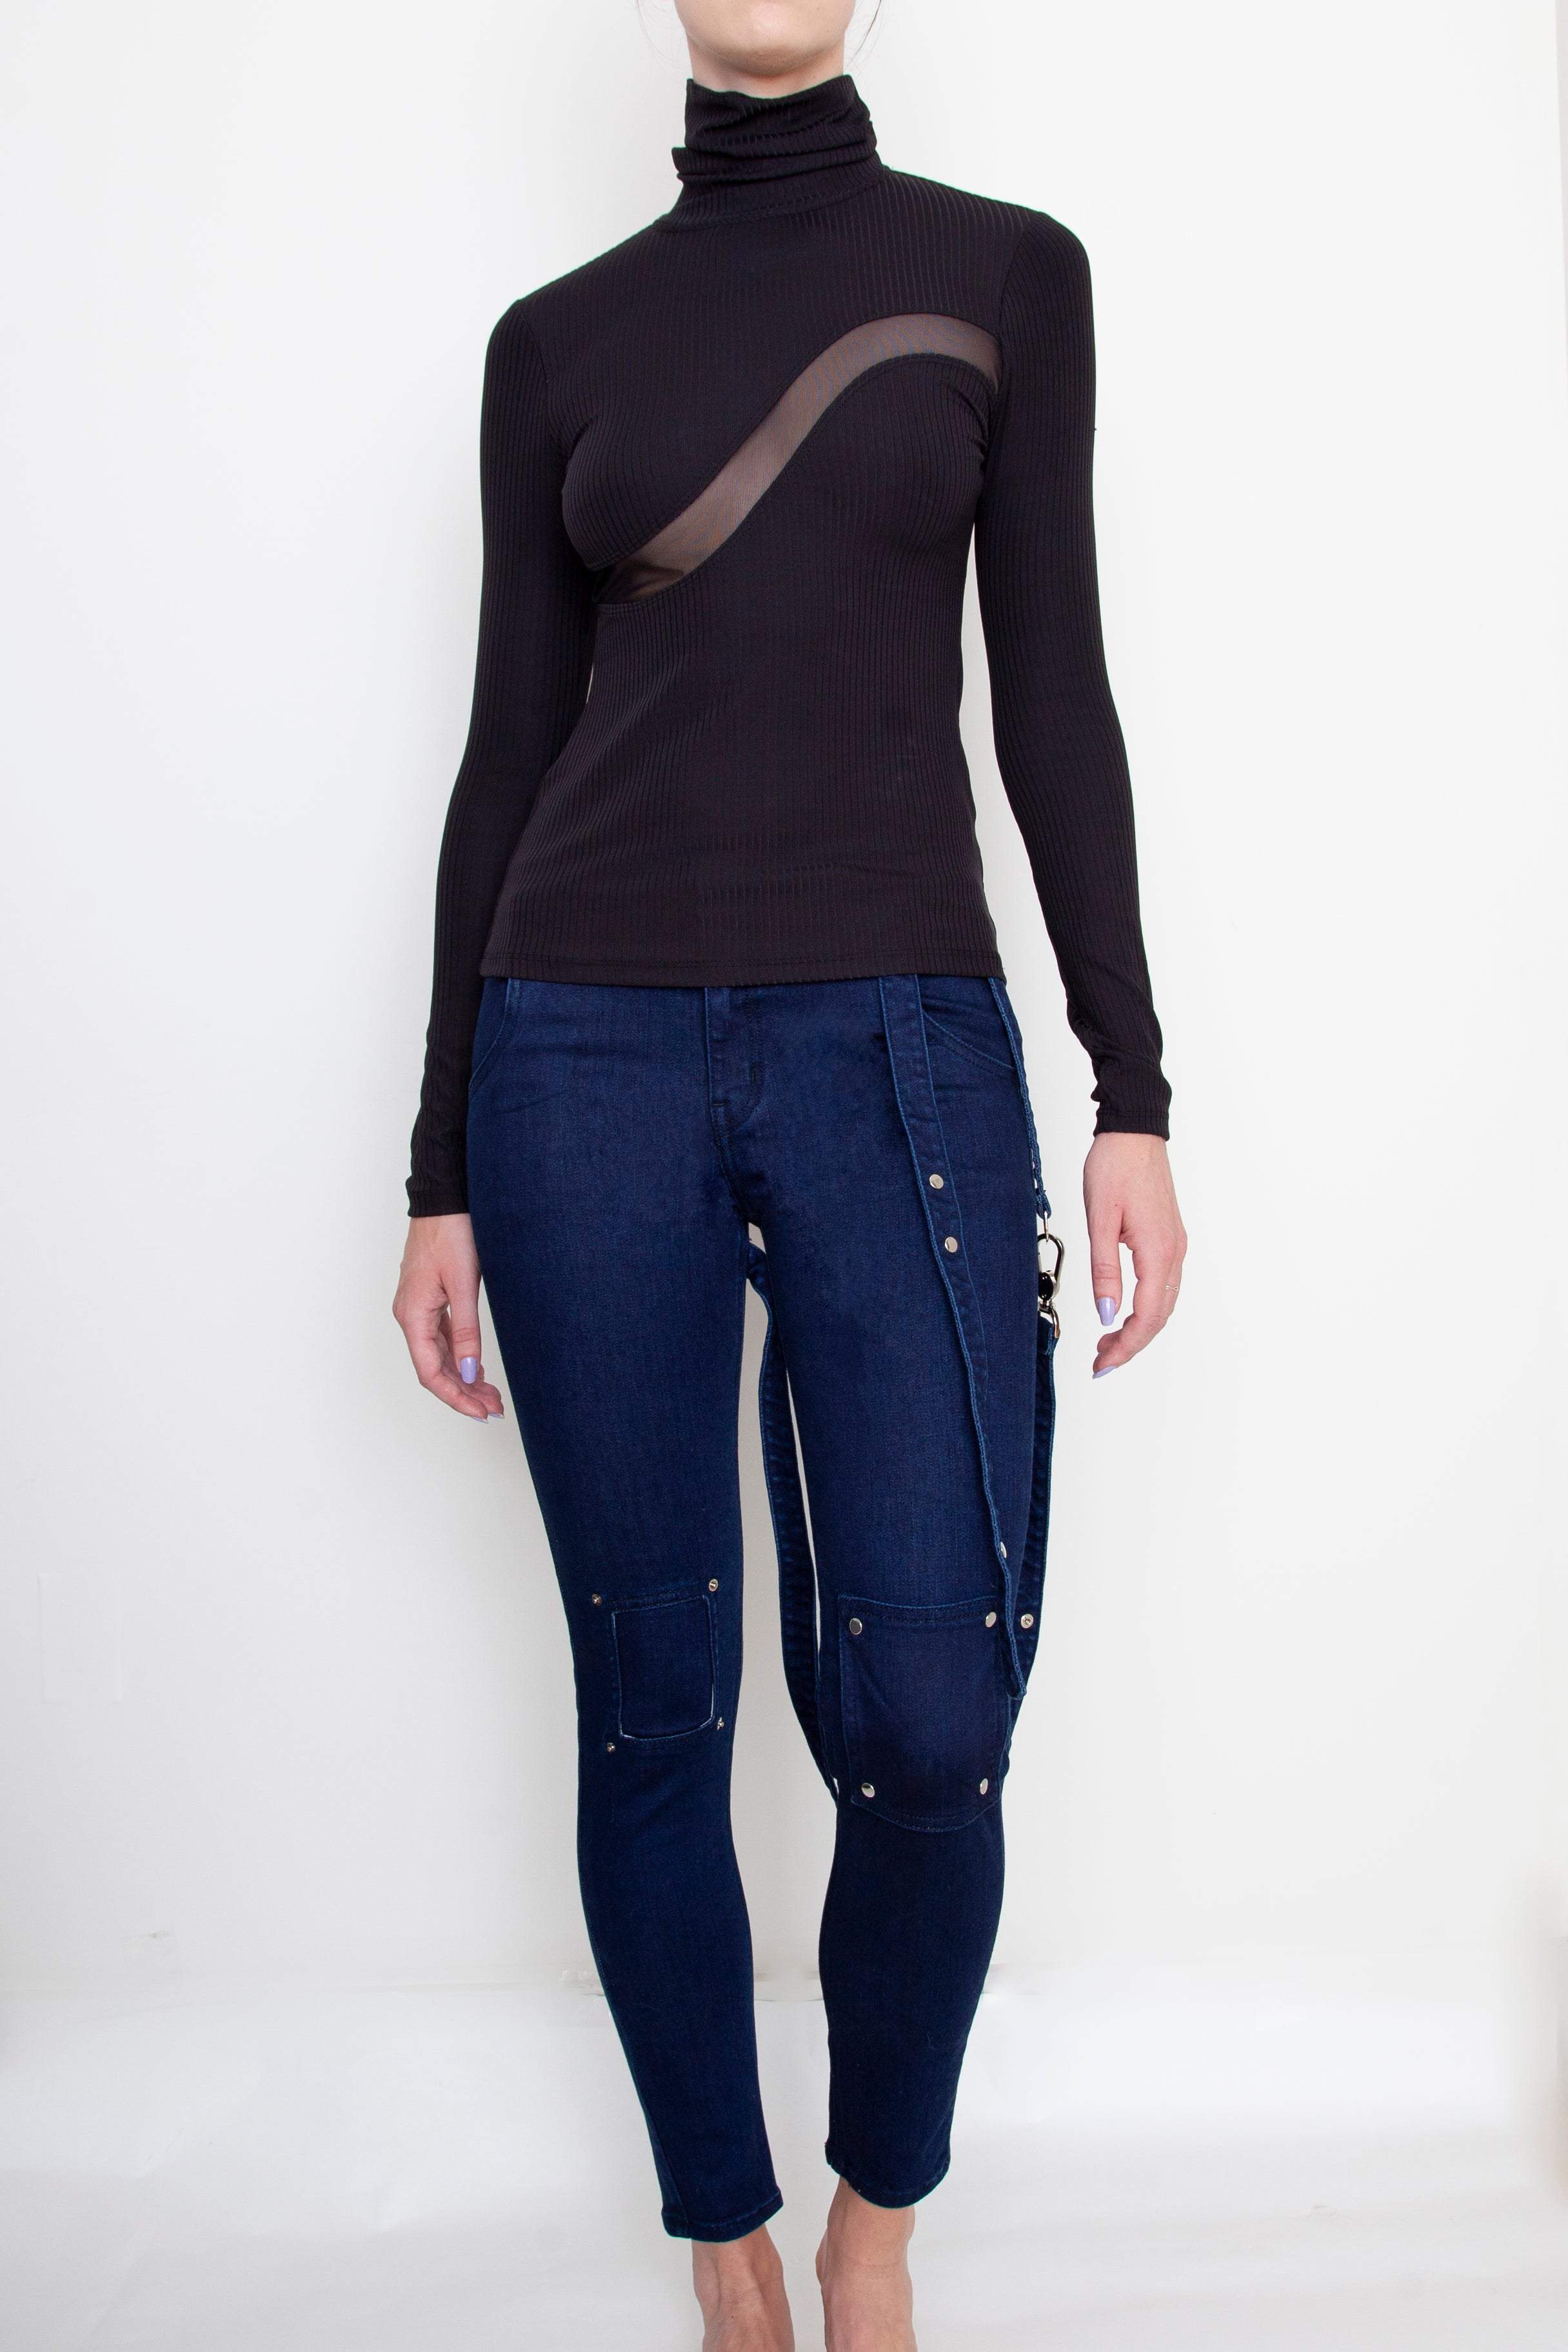 Navy Strappy Jeans For Charity